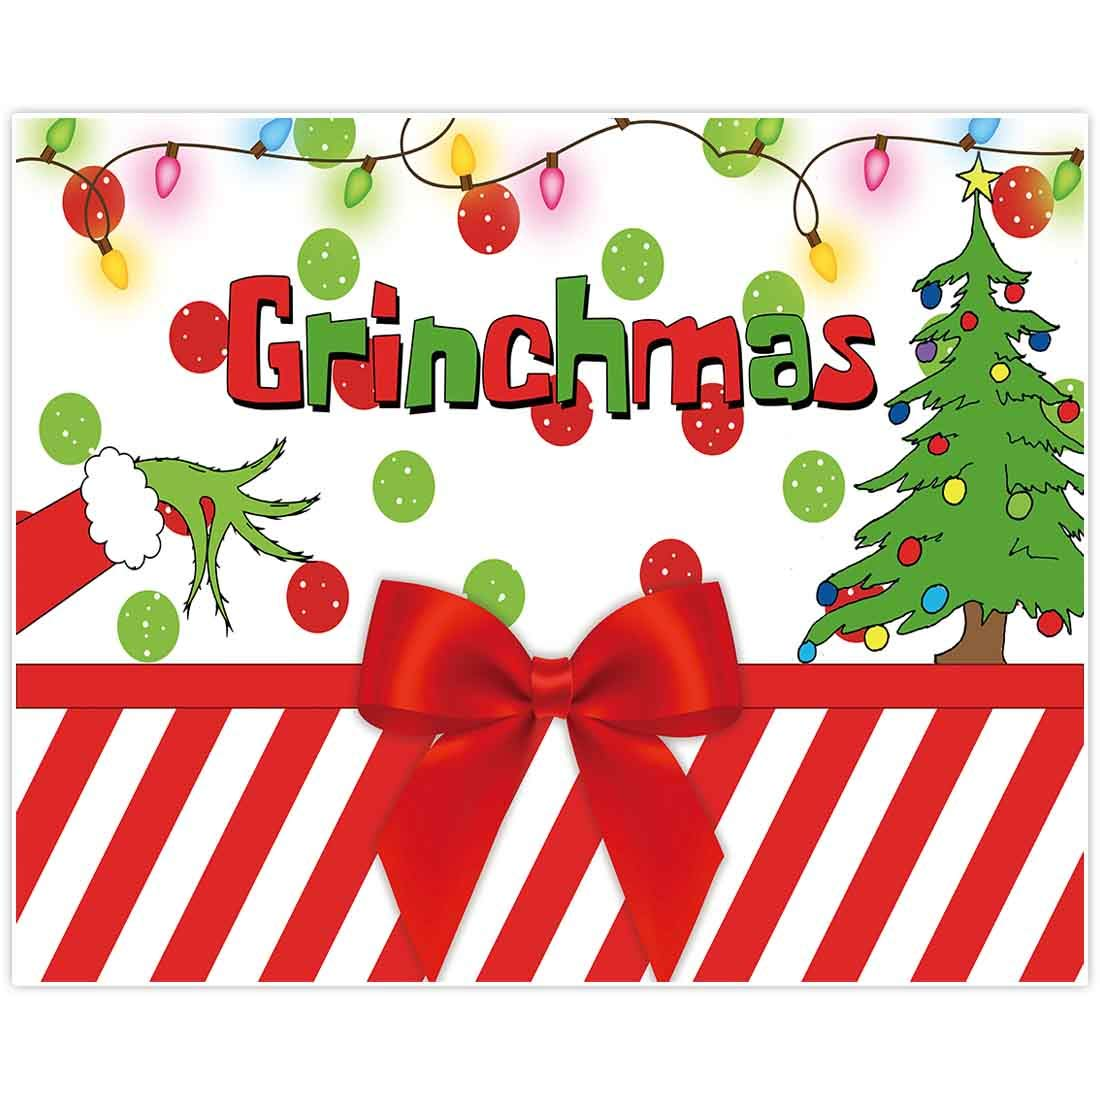 Allenjoy 10x8ft Merry Grinchmas Party Banners Backdrop Christmas Supplies Winter New Year Santa Background Baby Shower Children First Birthday Decorations Studio Photography Props Photo Booth Favors